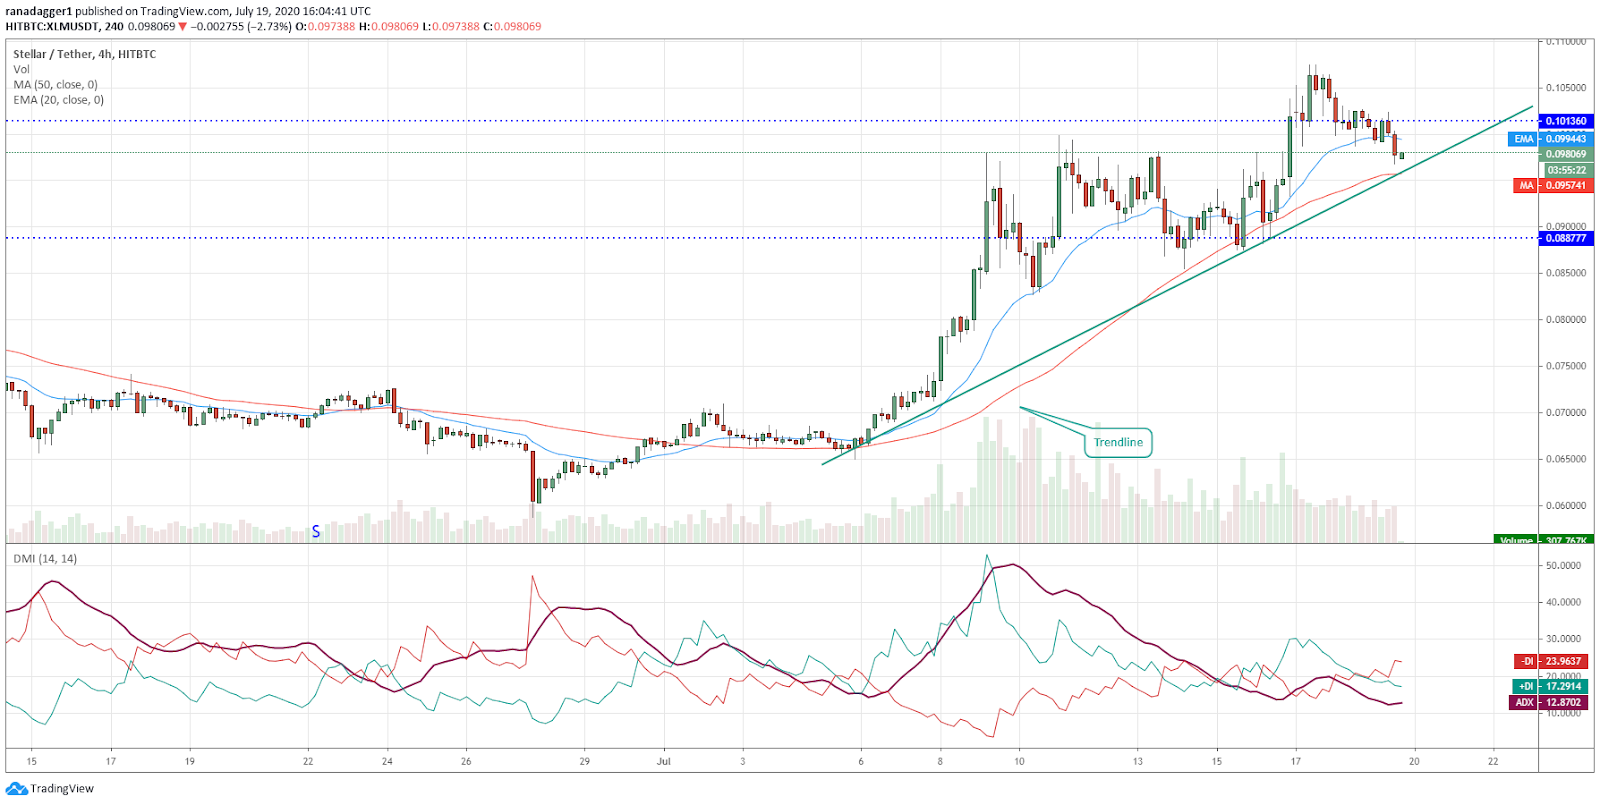 XLM/USD 4-hour chart